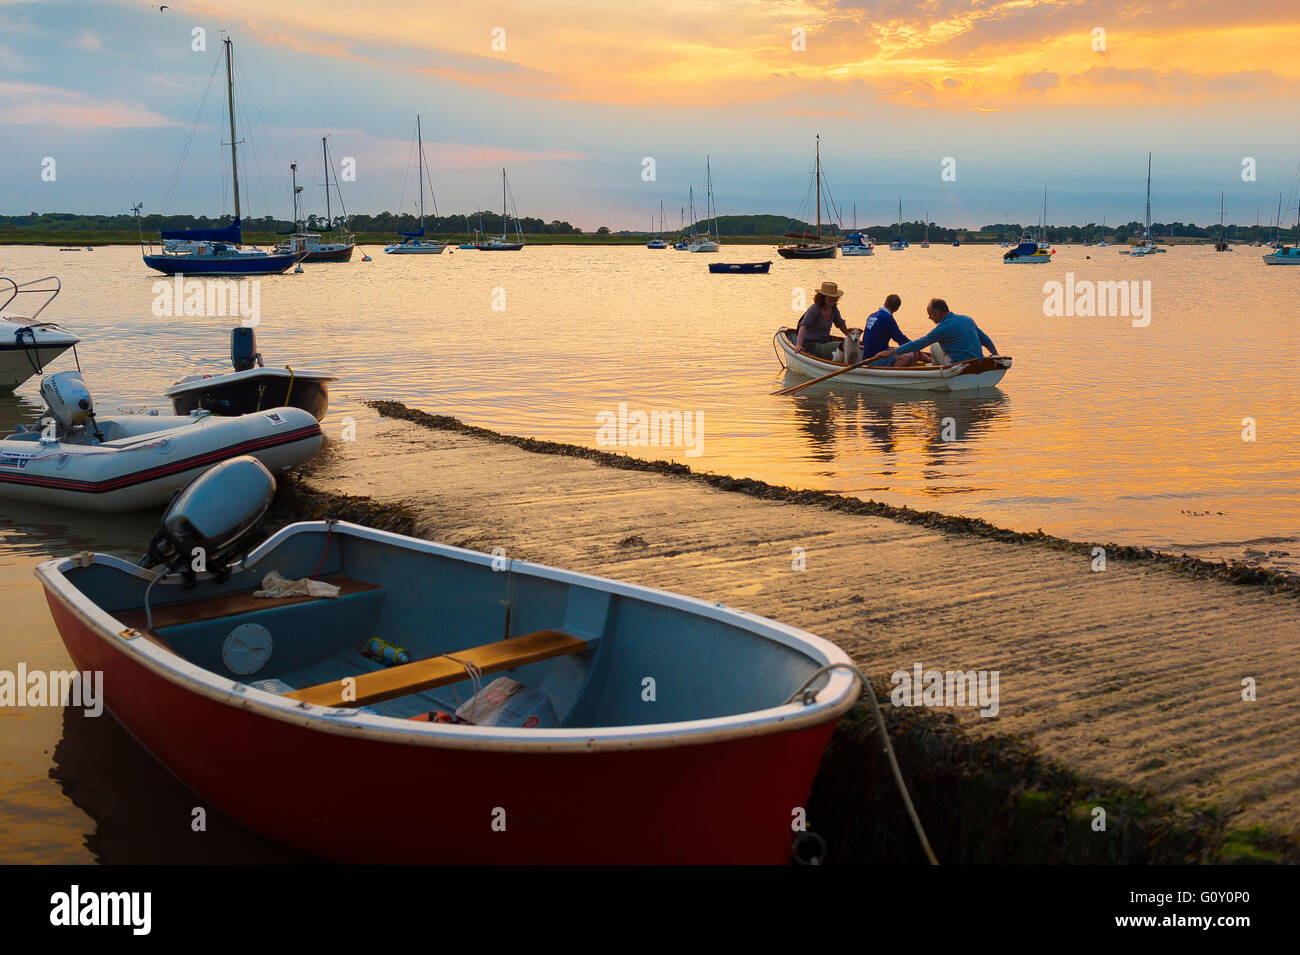 Rowing boat people sunset, view of people in a rowing boat near the wooden jetty on the River Deben in Ramsholt, - Stock Image